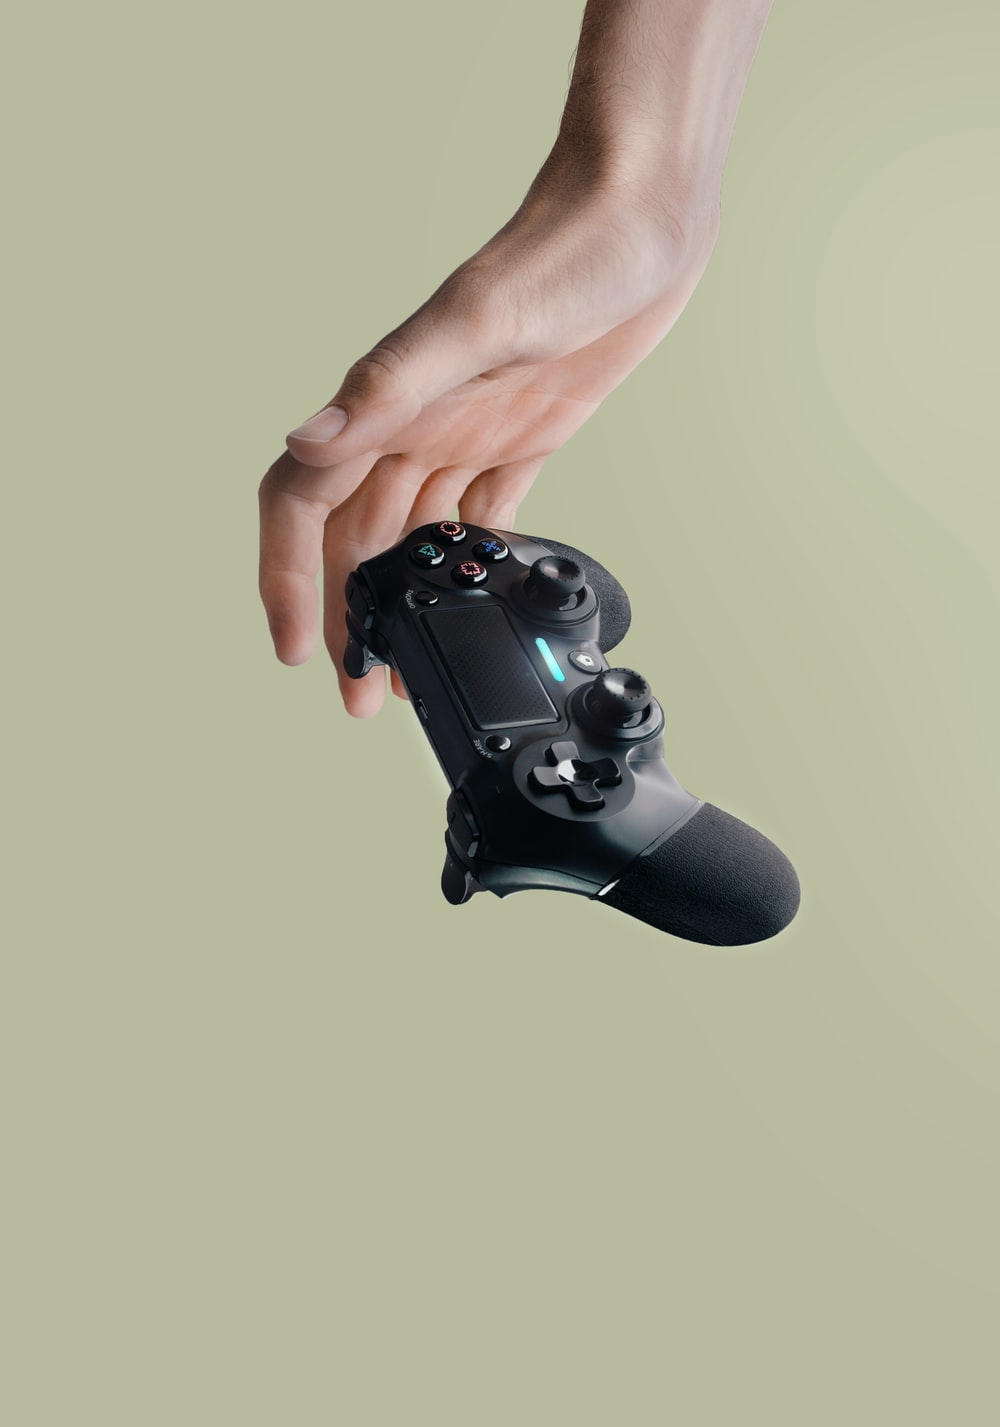 person holding Sony DualShock 4 wireless controller